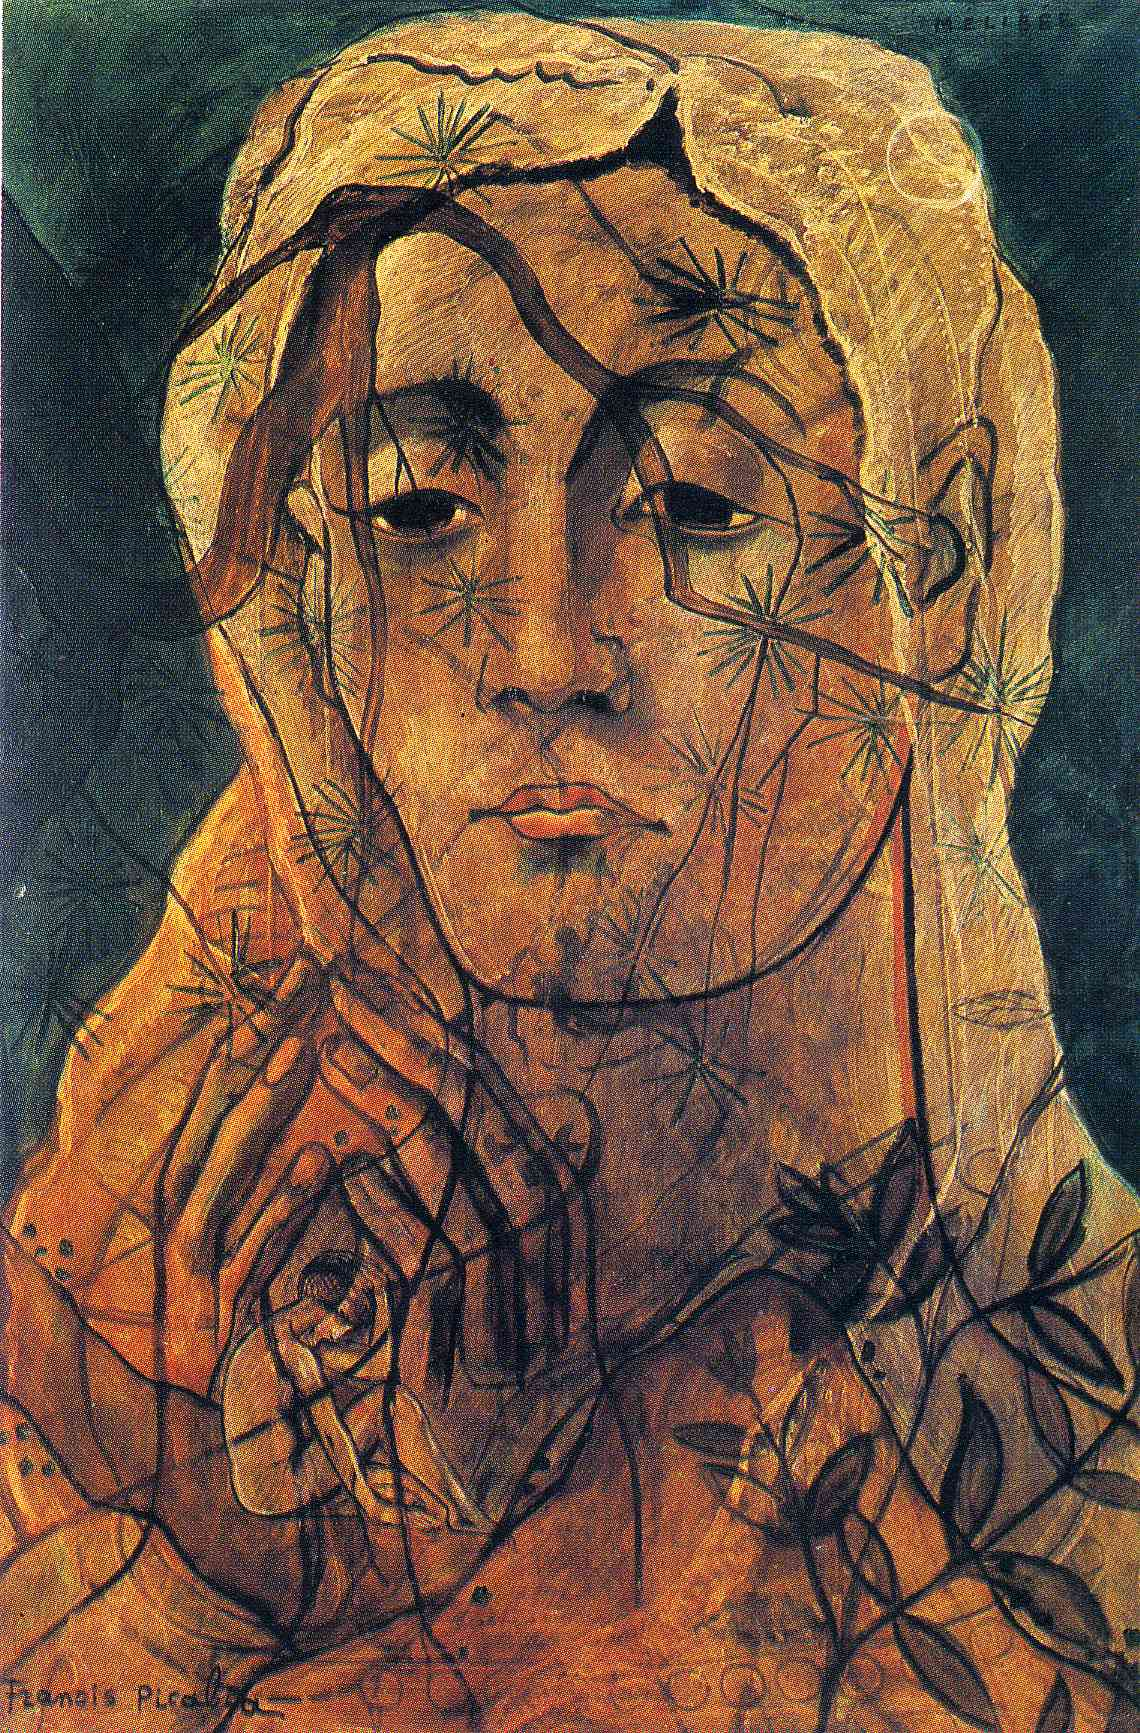 Picabia (7)